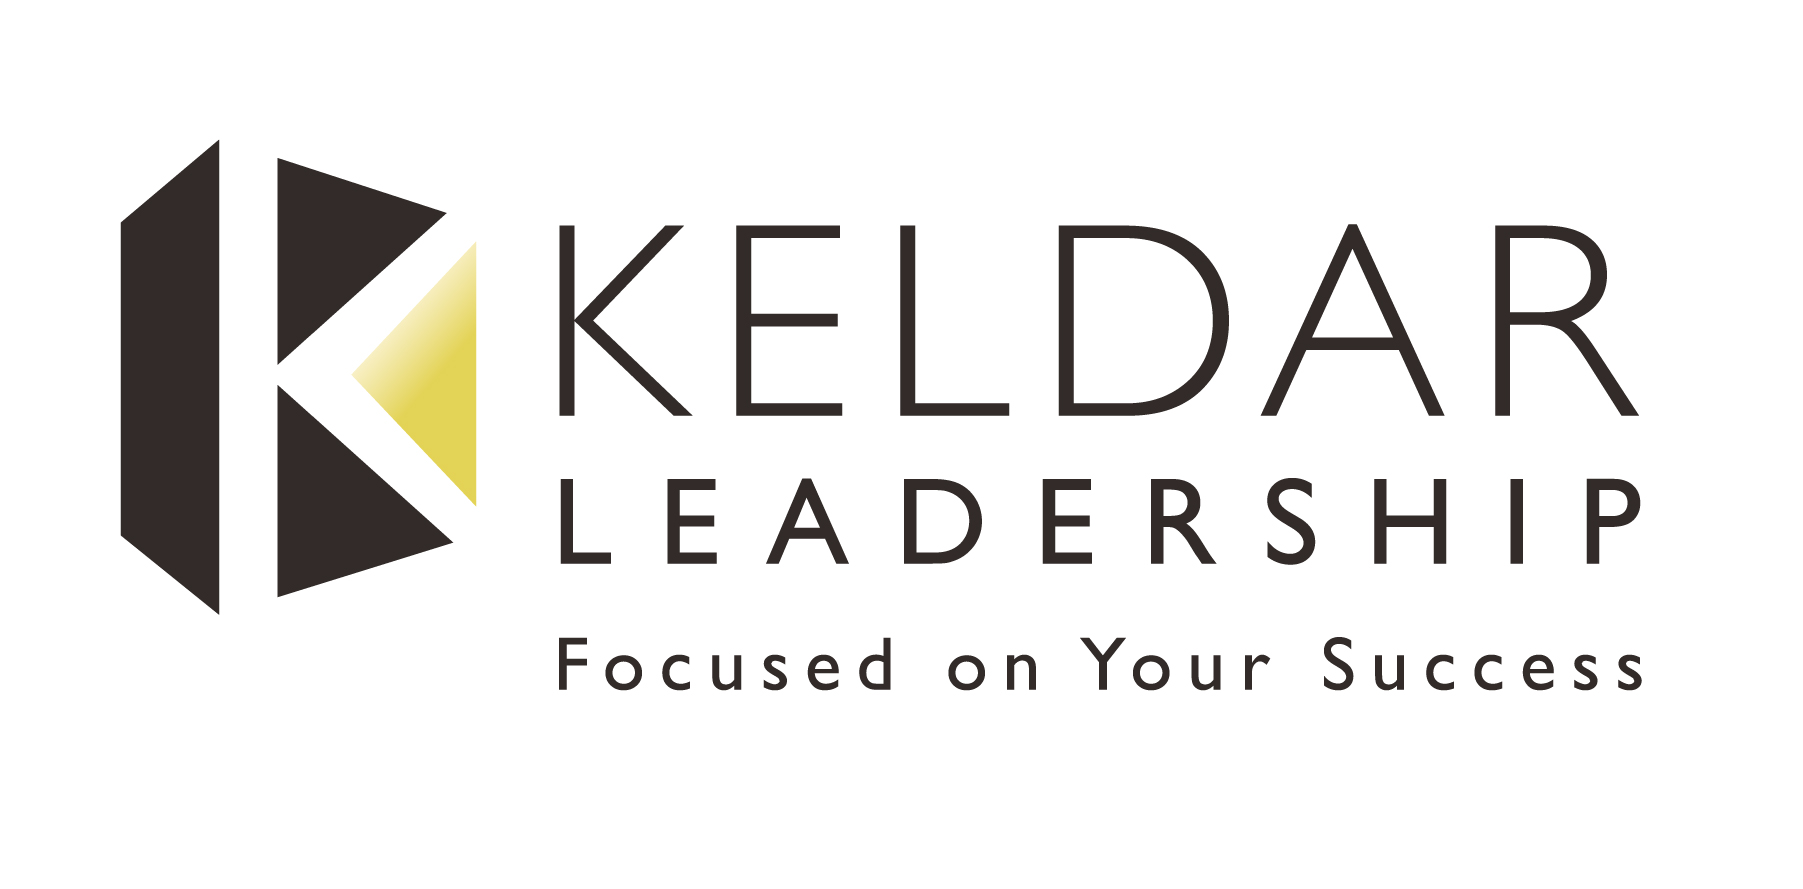 Kildare Leadership: Focused on Your Success